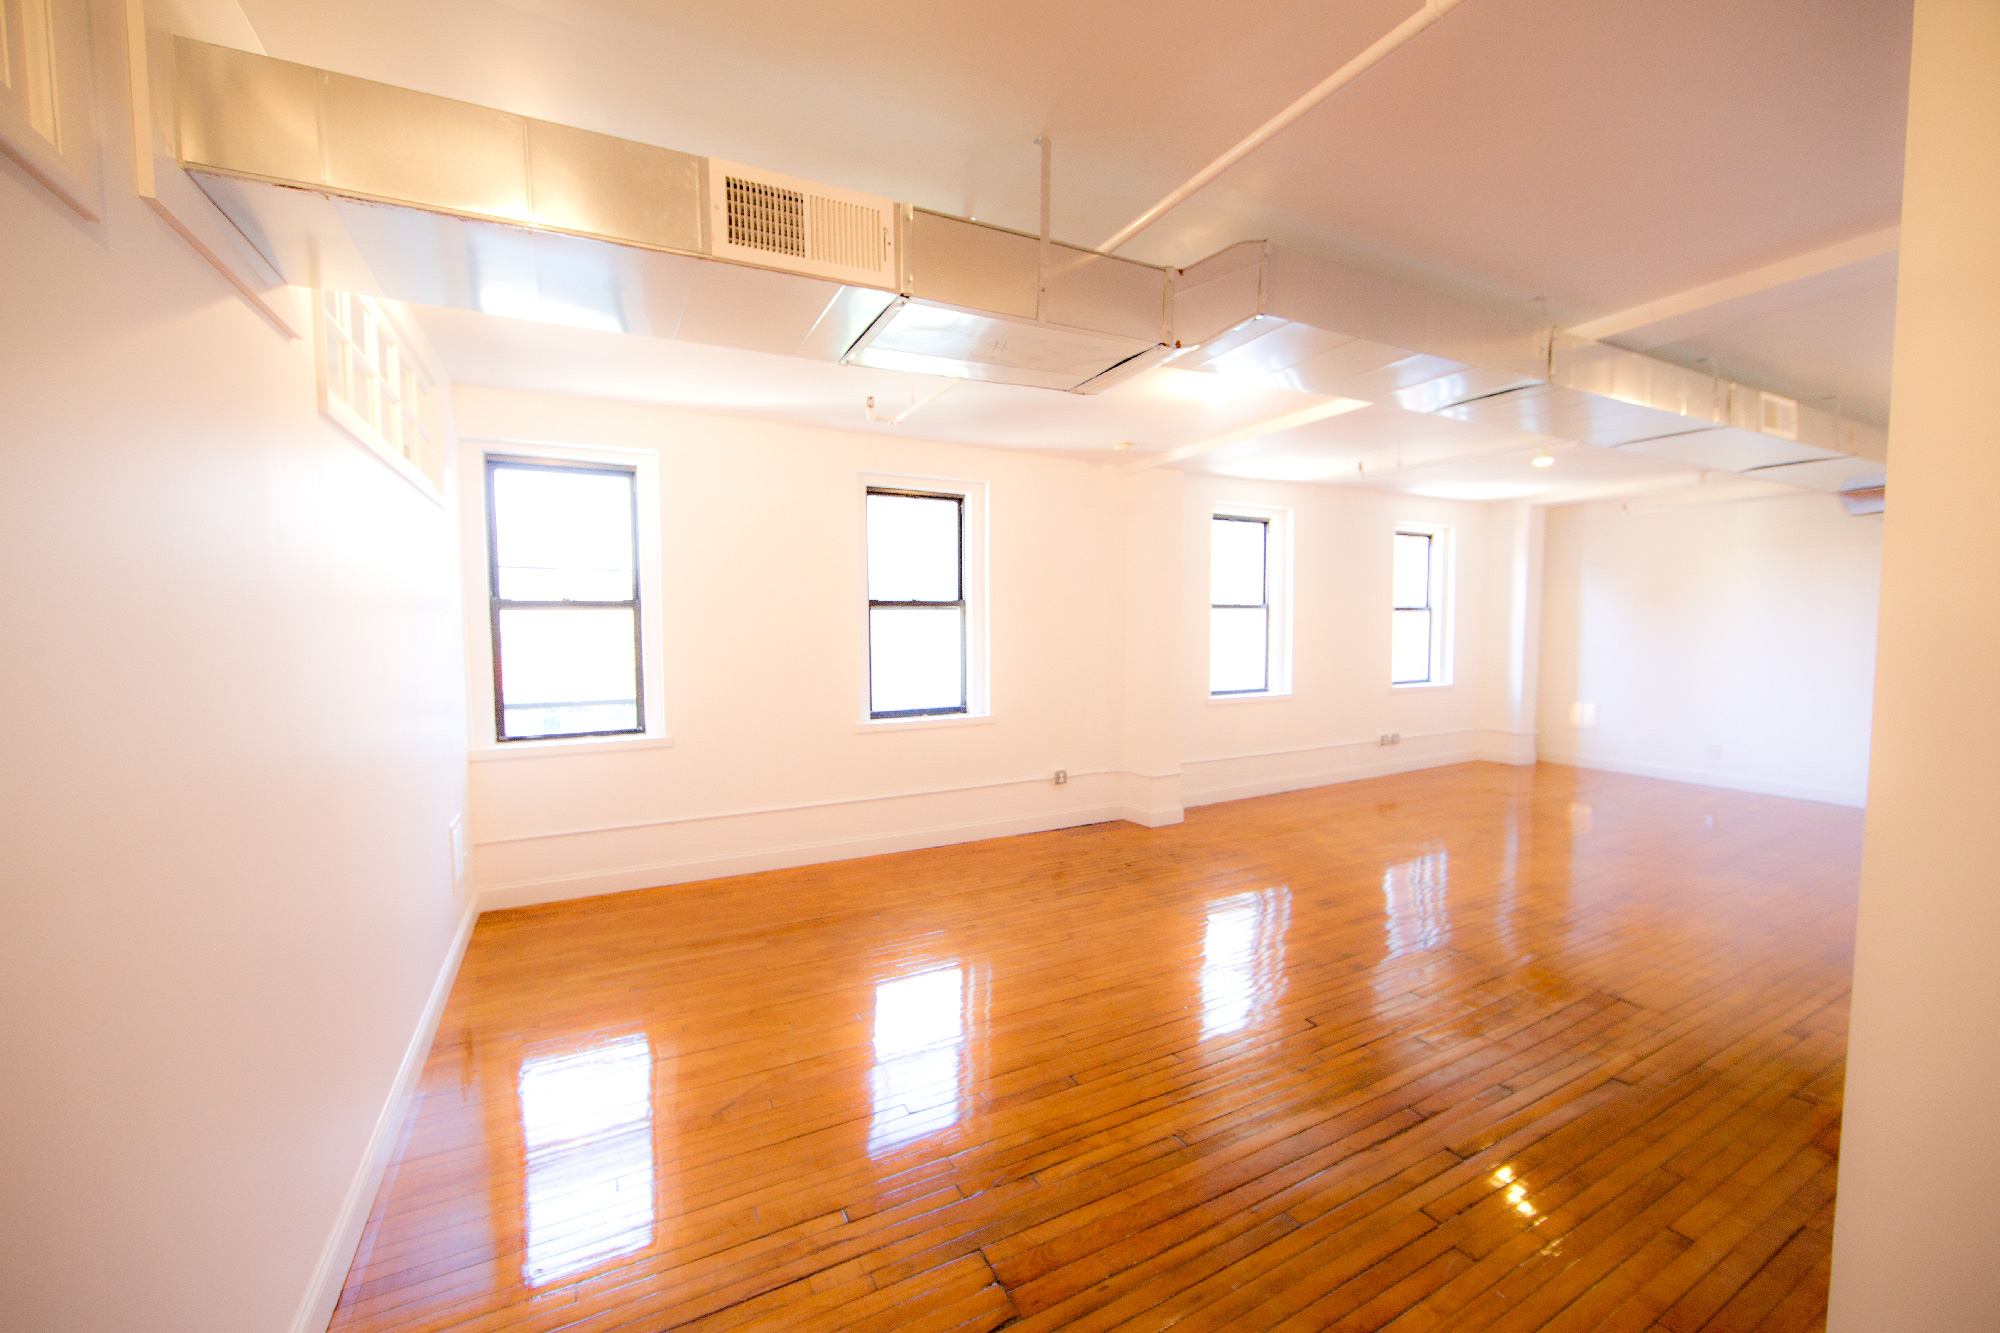 3B for rent at 318 Grand street The Historic Ballroom Building in